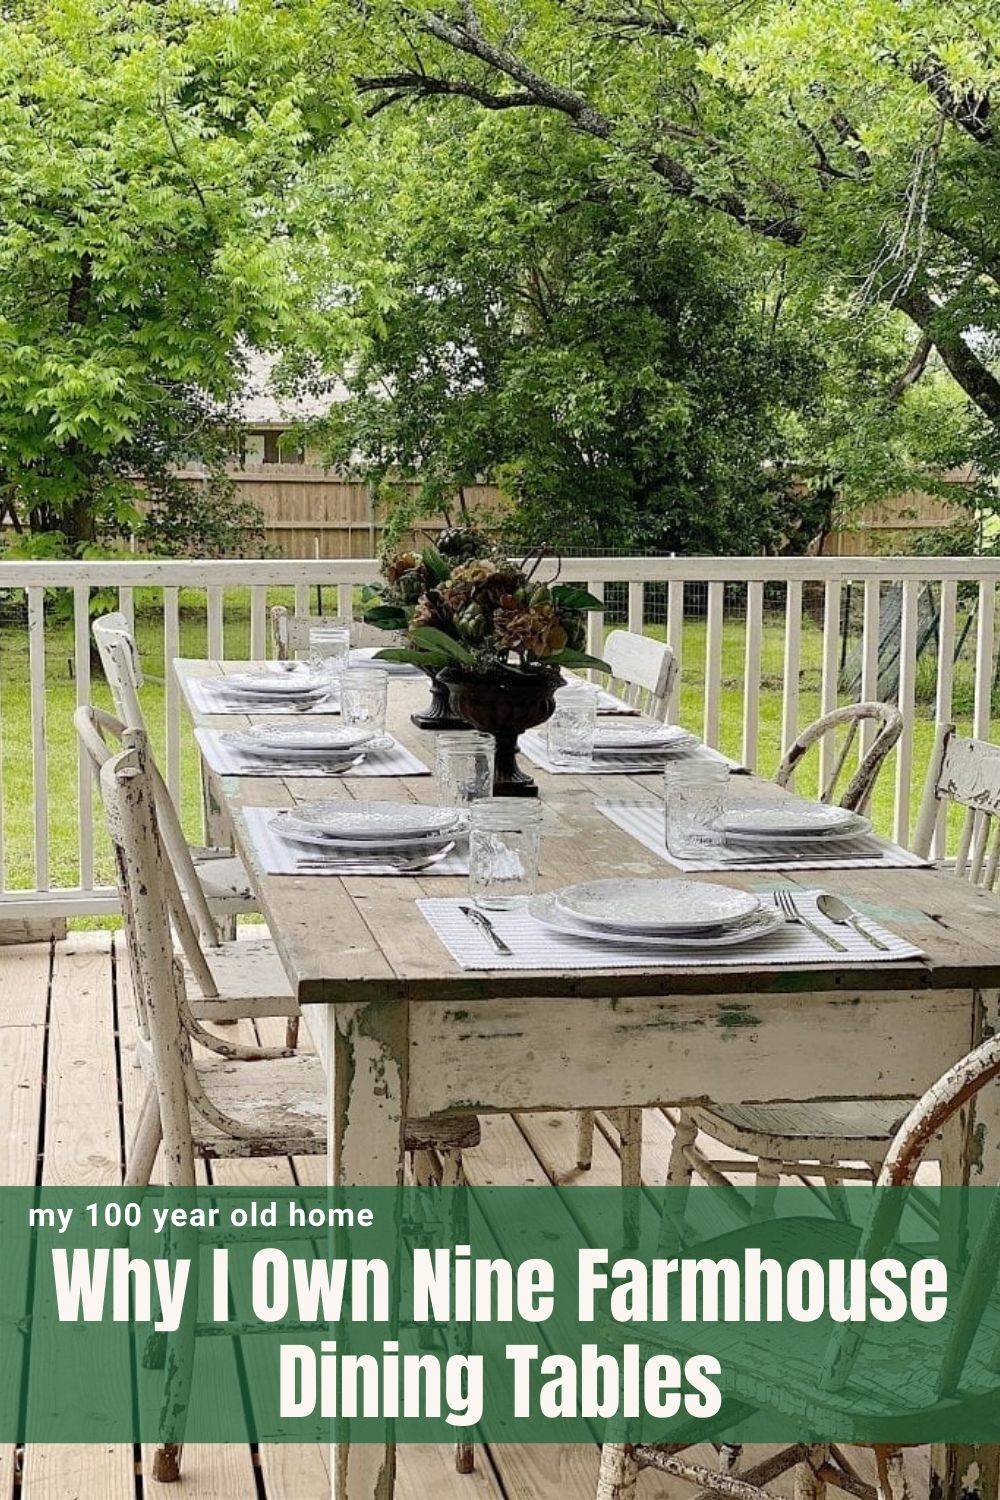 Ok. So maybe I didn't actually know that I owned nine farmhouse dining tables until I wrote this post. They are all wonderful wood tables.